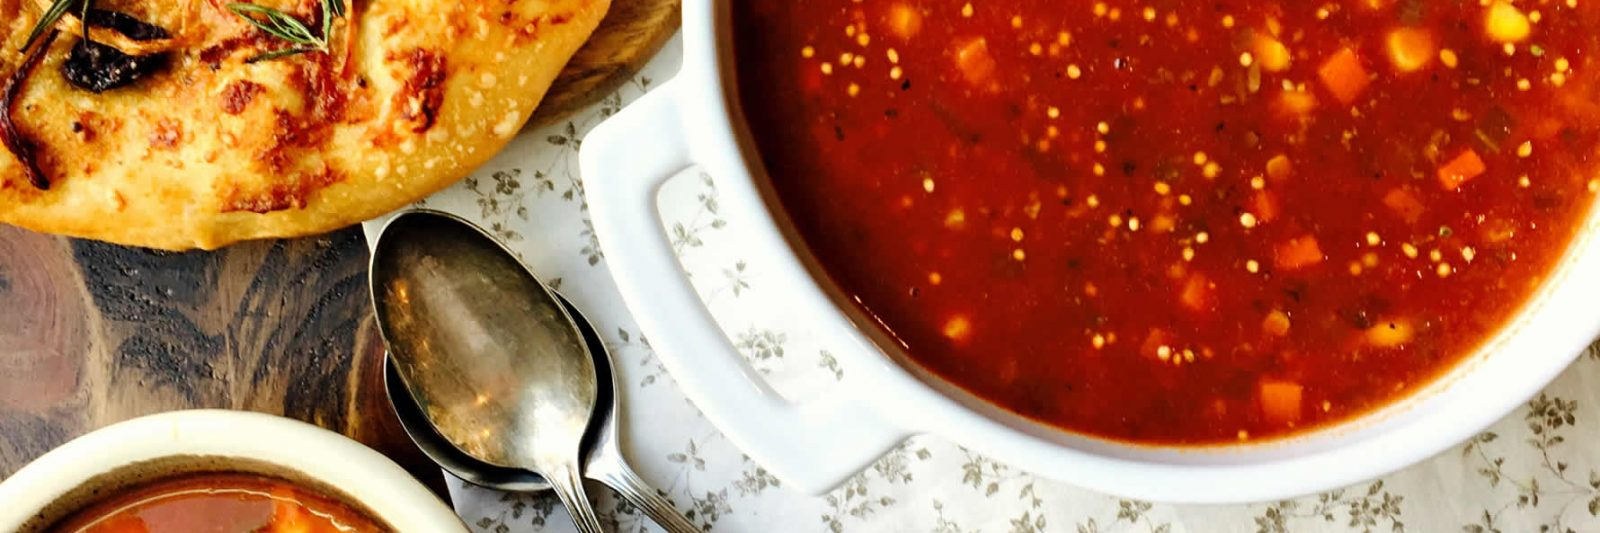 Soup, Stew and Casserole Recipes with Mustard - Hamburger Soup and Focaccia